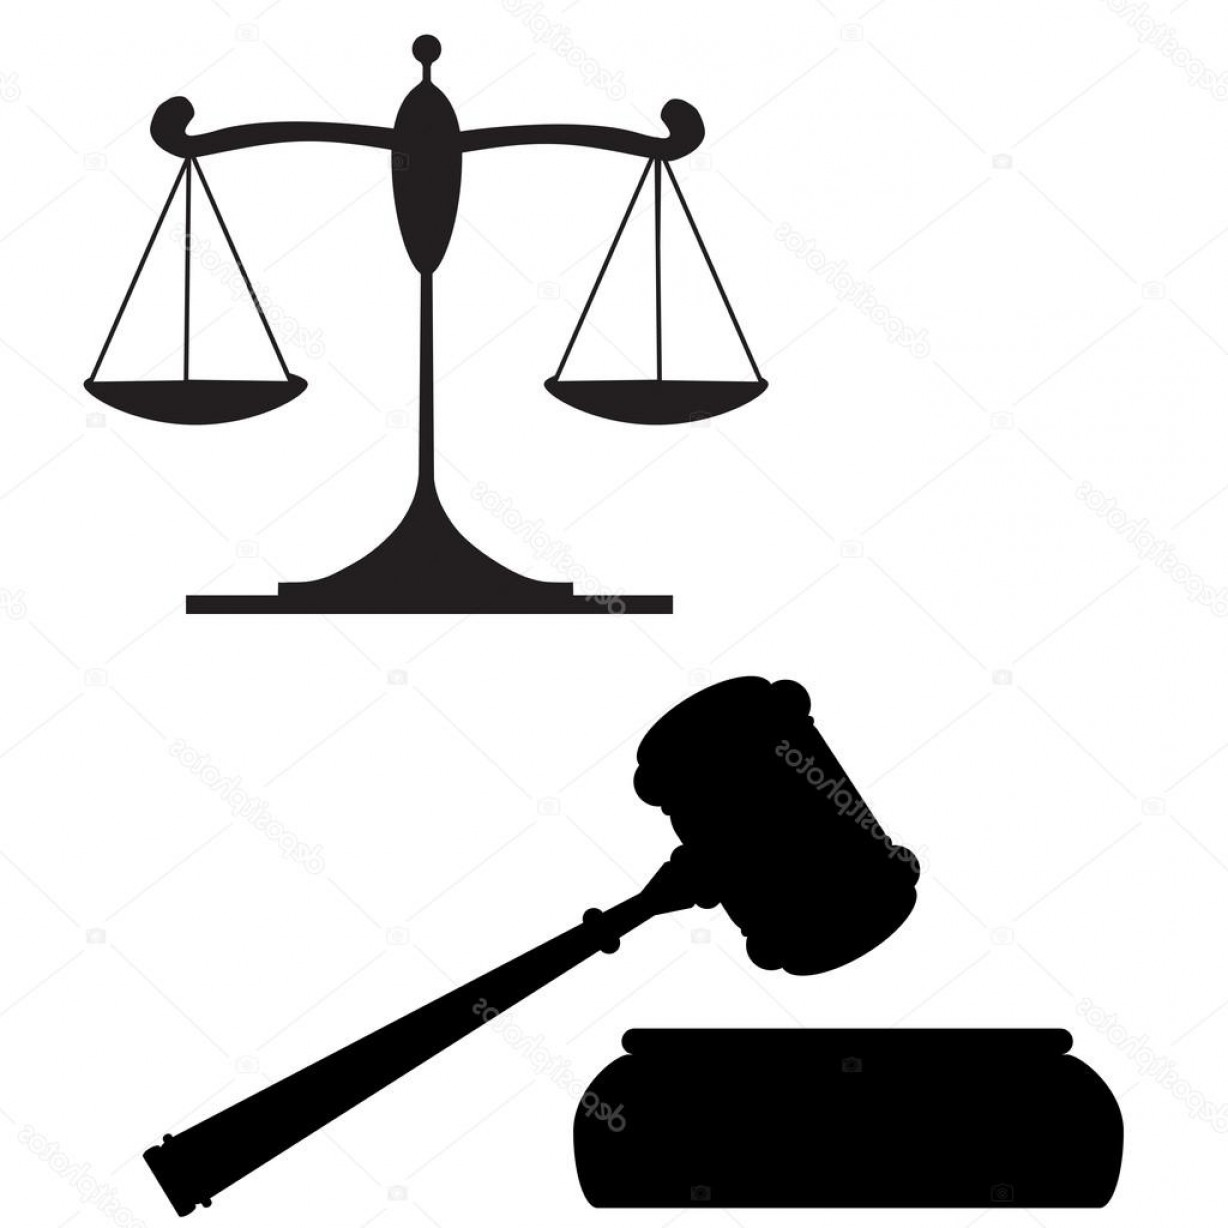 Scales Of Justice Vector: Stock Illustration Scales Of Justice And Gavel